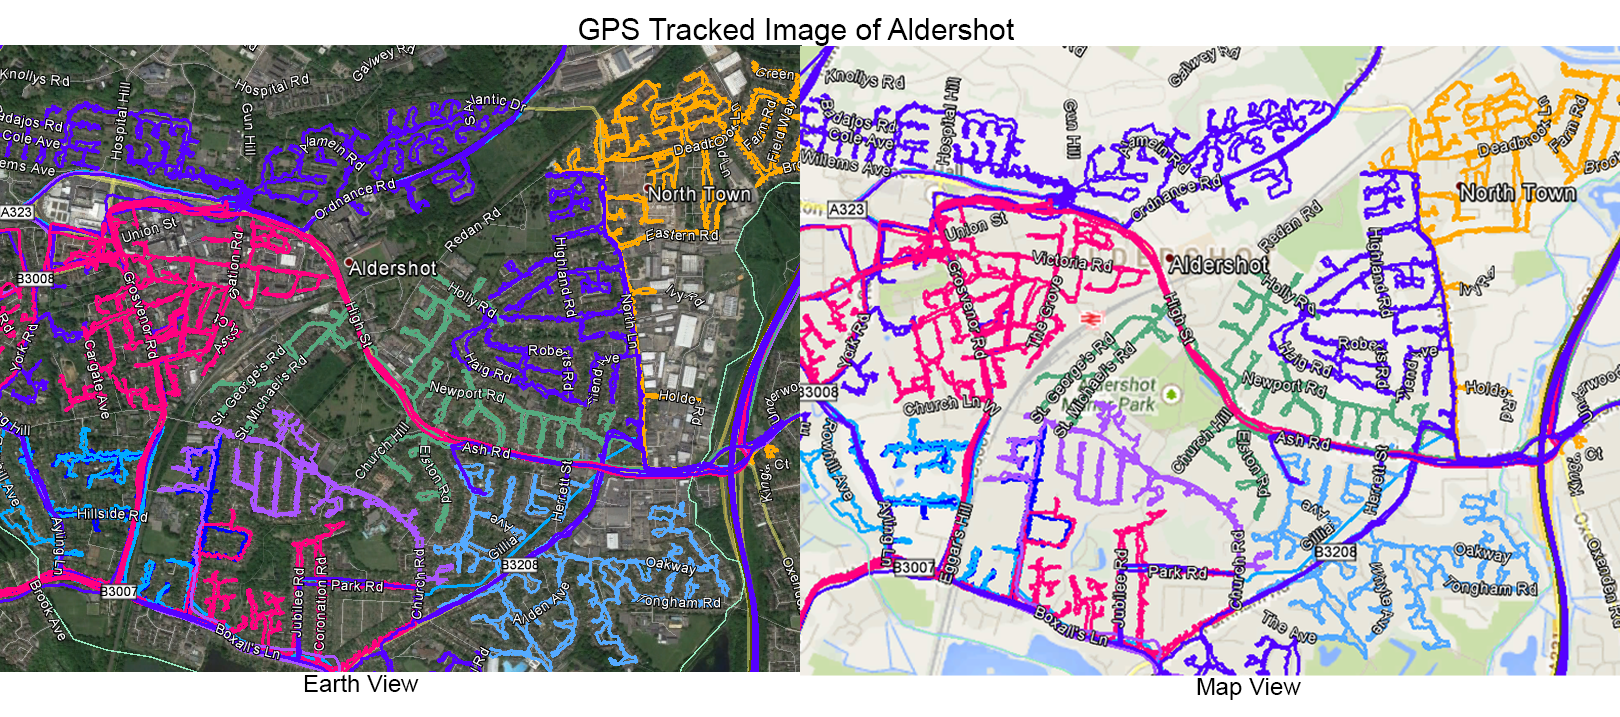 Leaflet Distribution Aldershot - GPS Tracked